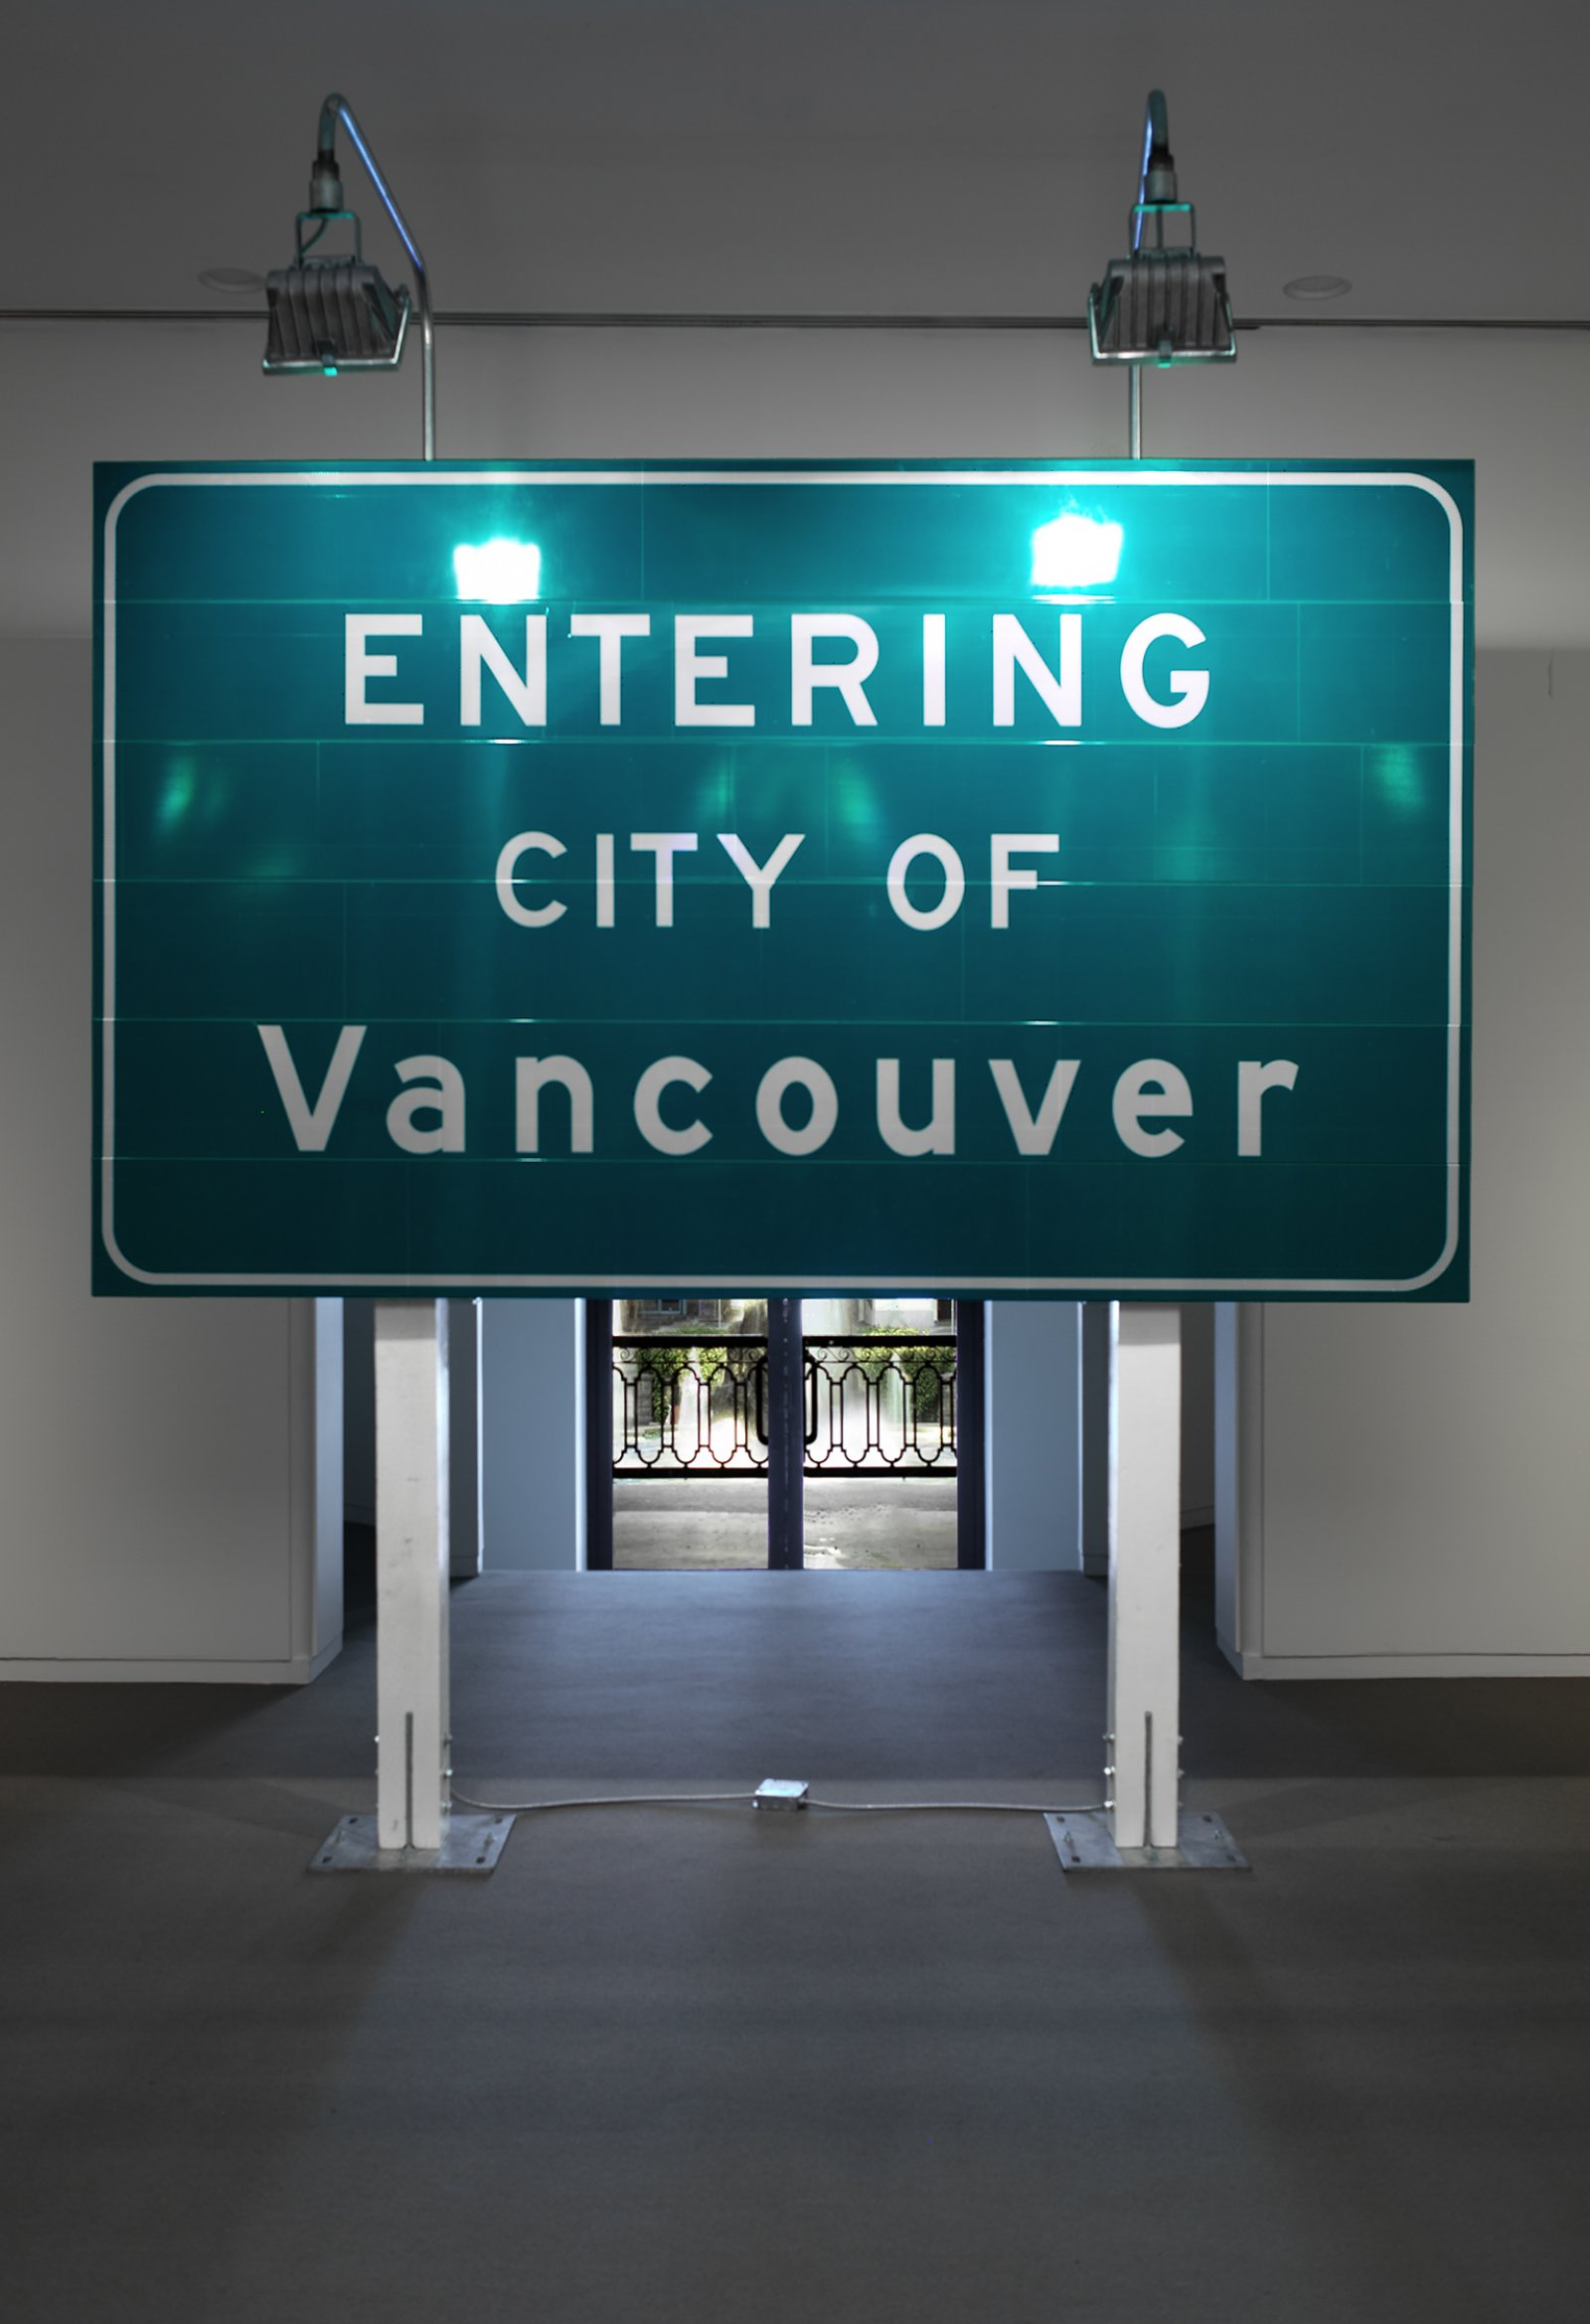 Ron Terada, Entering City of Vancouver, 2002, 3m reflective highway vinyl, extruded aluminum, industrial lights, galvanized steel, wood, 120 x 120 x 60 in. (305 x 305 x 152 cm)